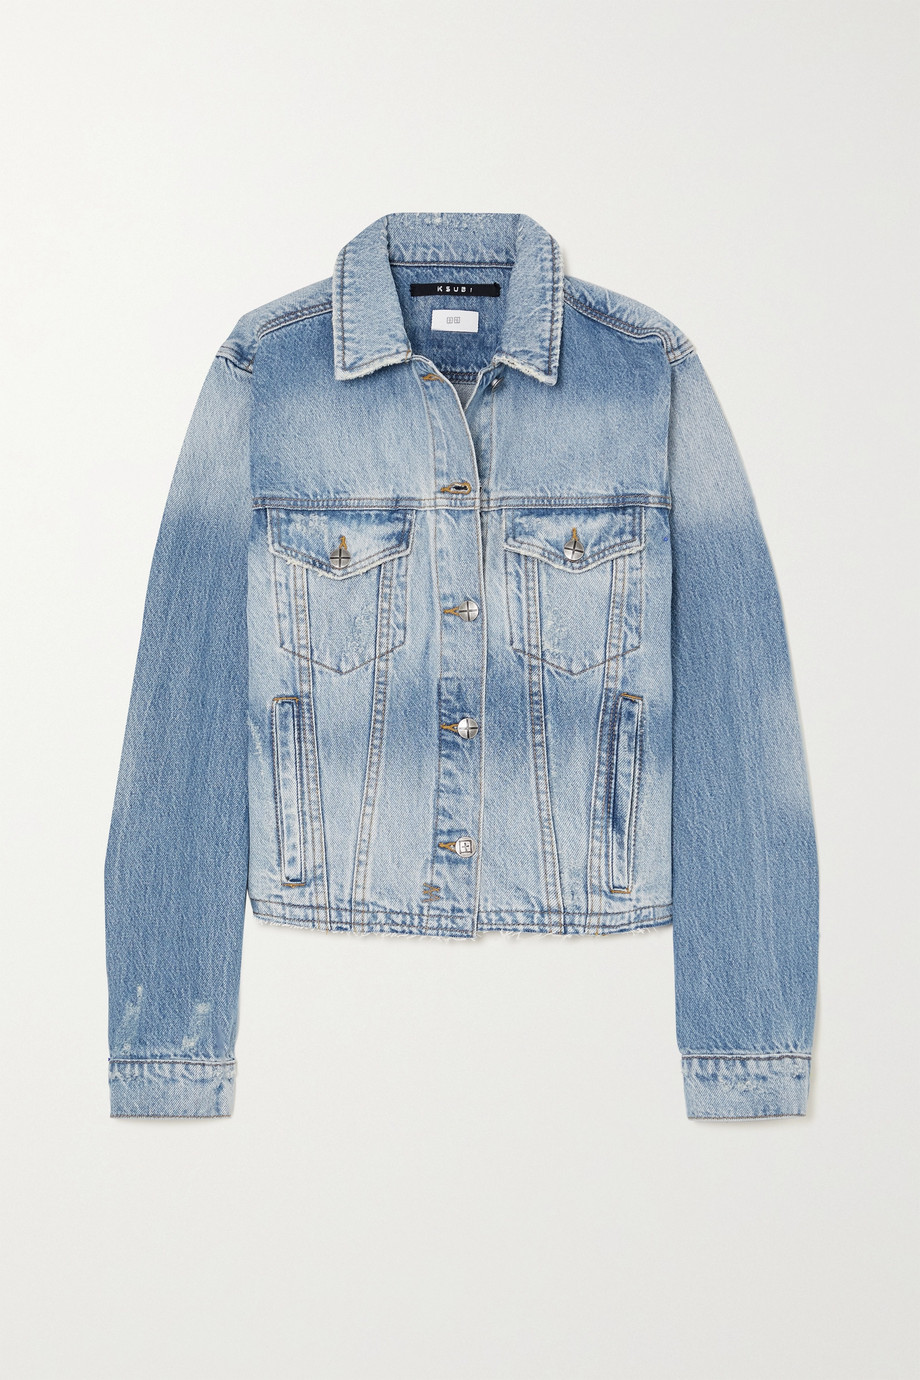 Ksubi Tour distressed denim jacket